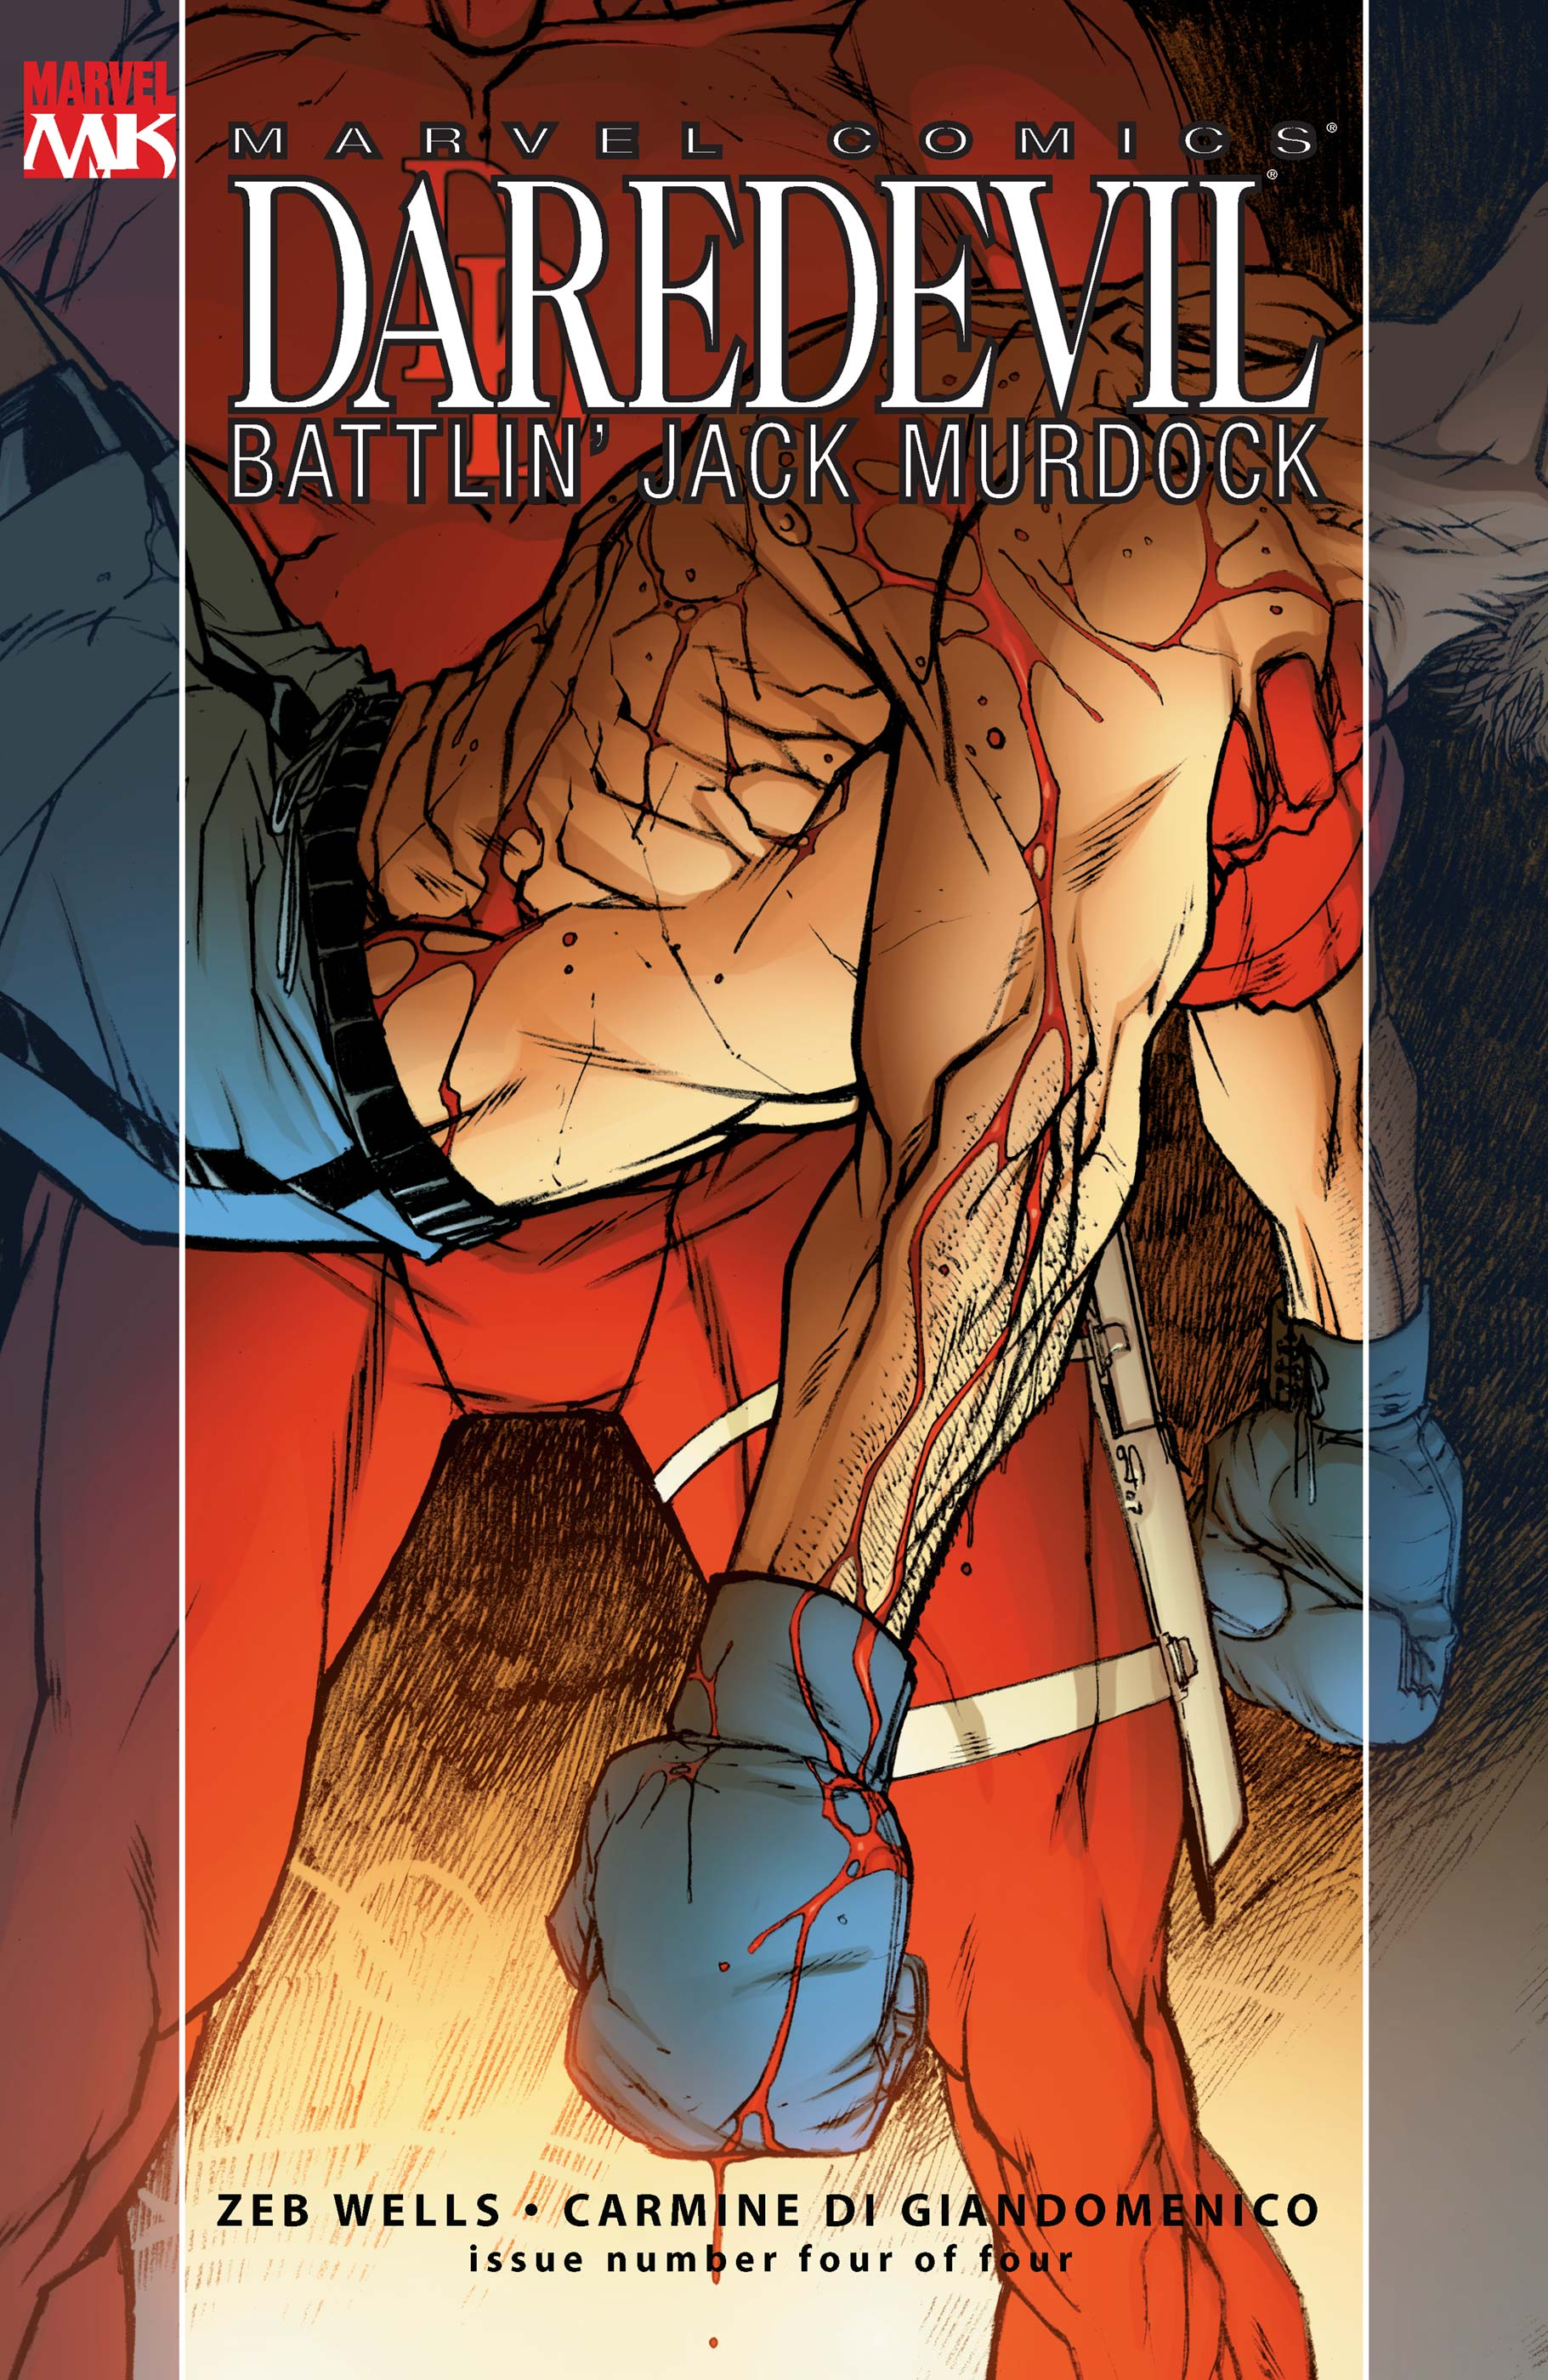 Daredevil: Battlin' Jack Murdock (2007) #4